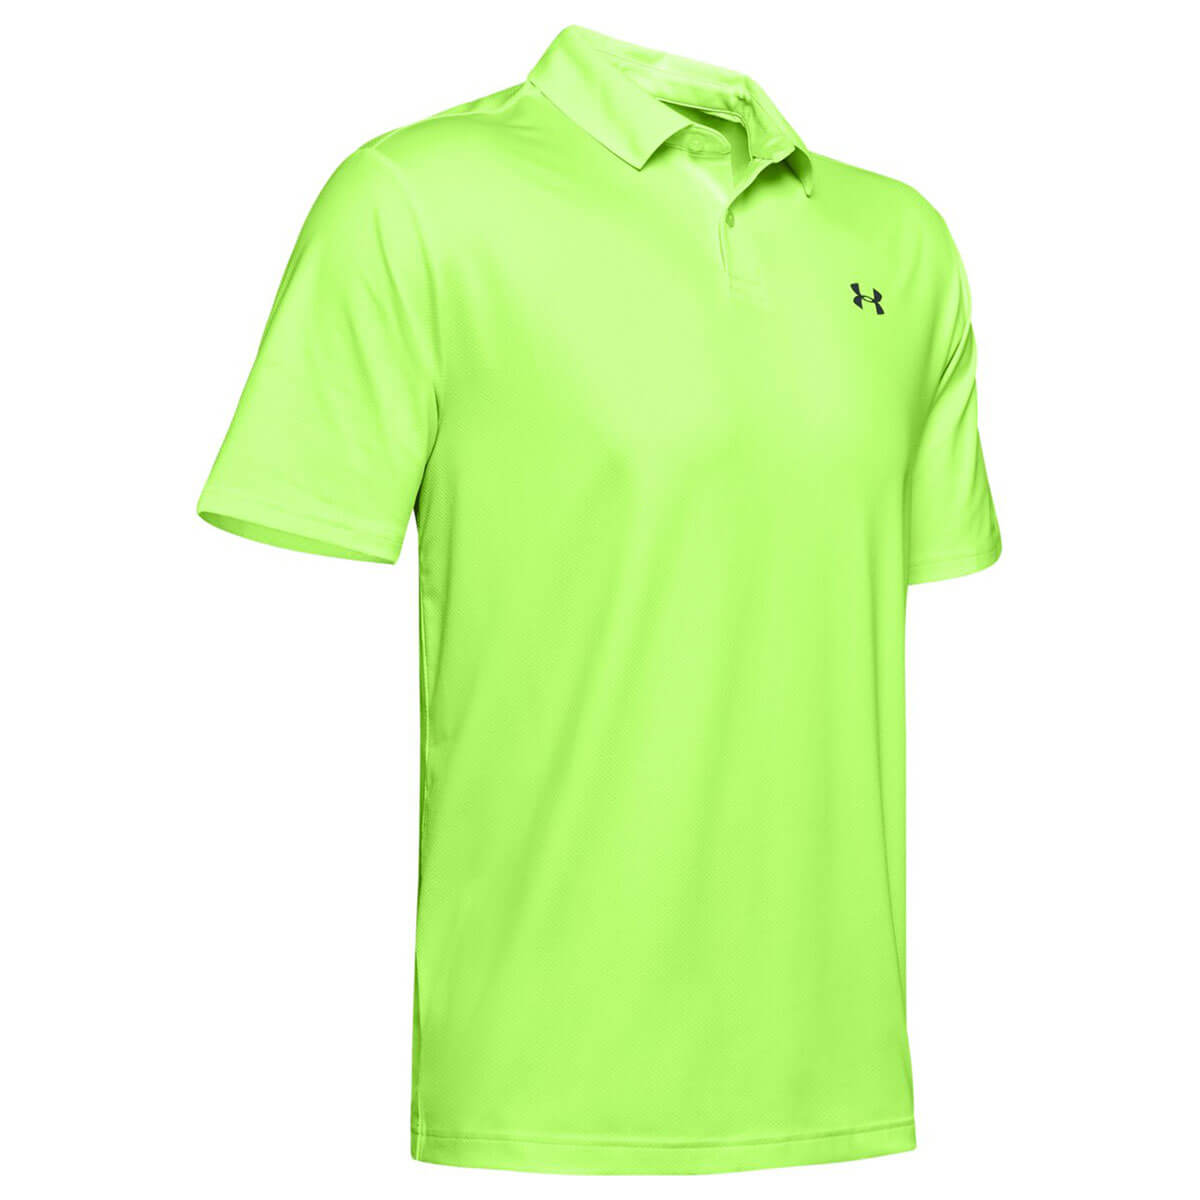 Under-Armour-Mens-2019-Performance-2-0-Stretch-Durable-Smooth-Golf-Polo-Shirt thumbnail 24